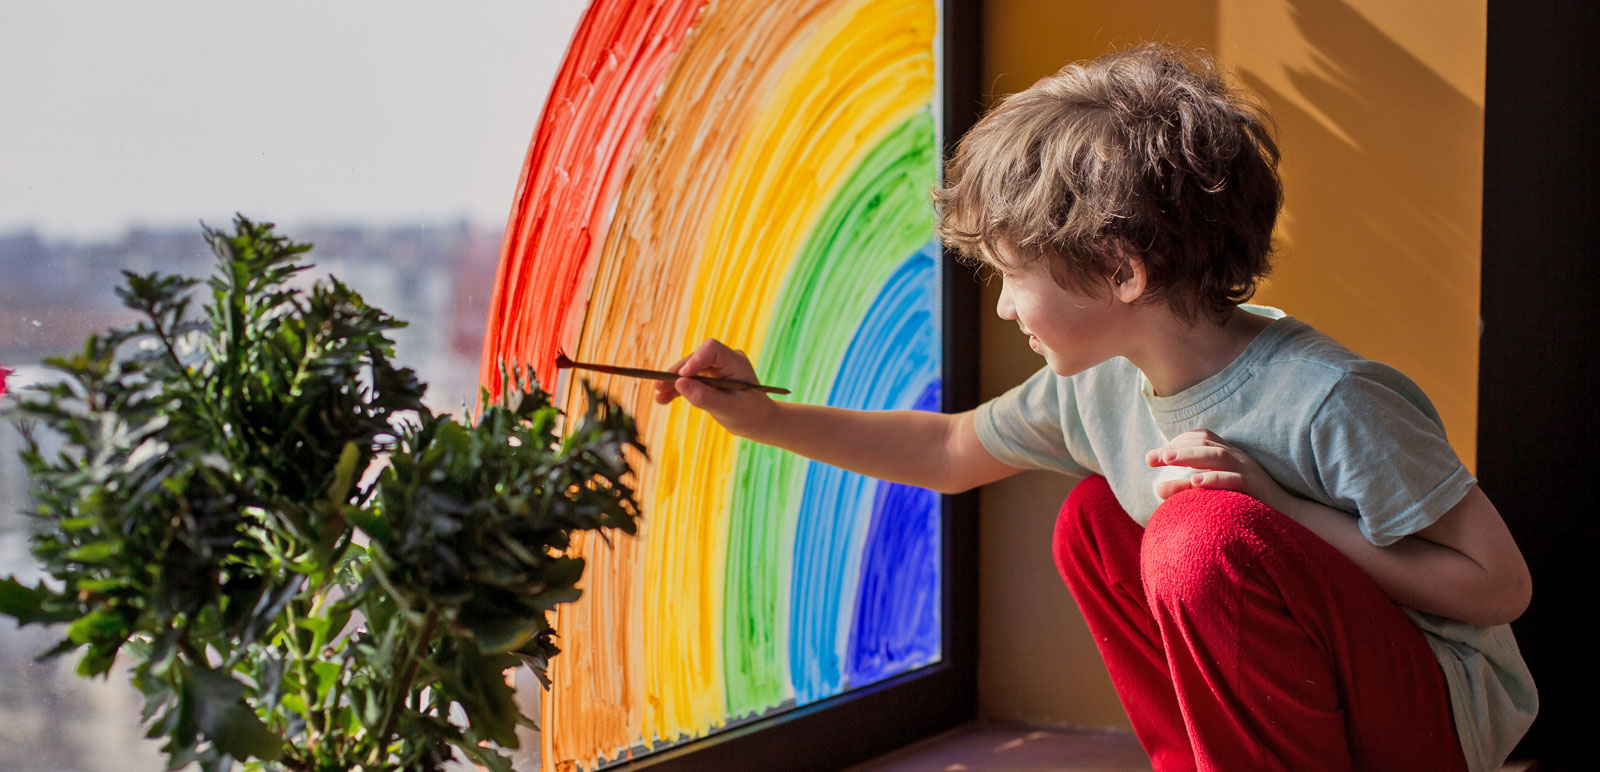 boy painting a rainbow on a window